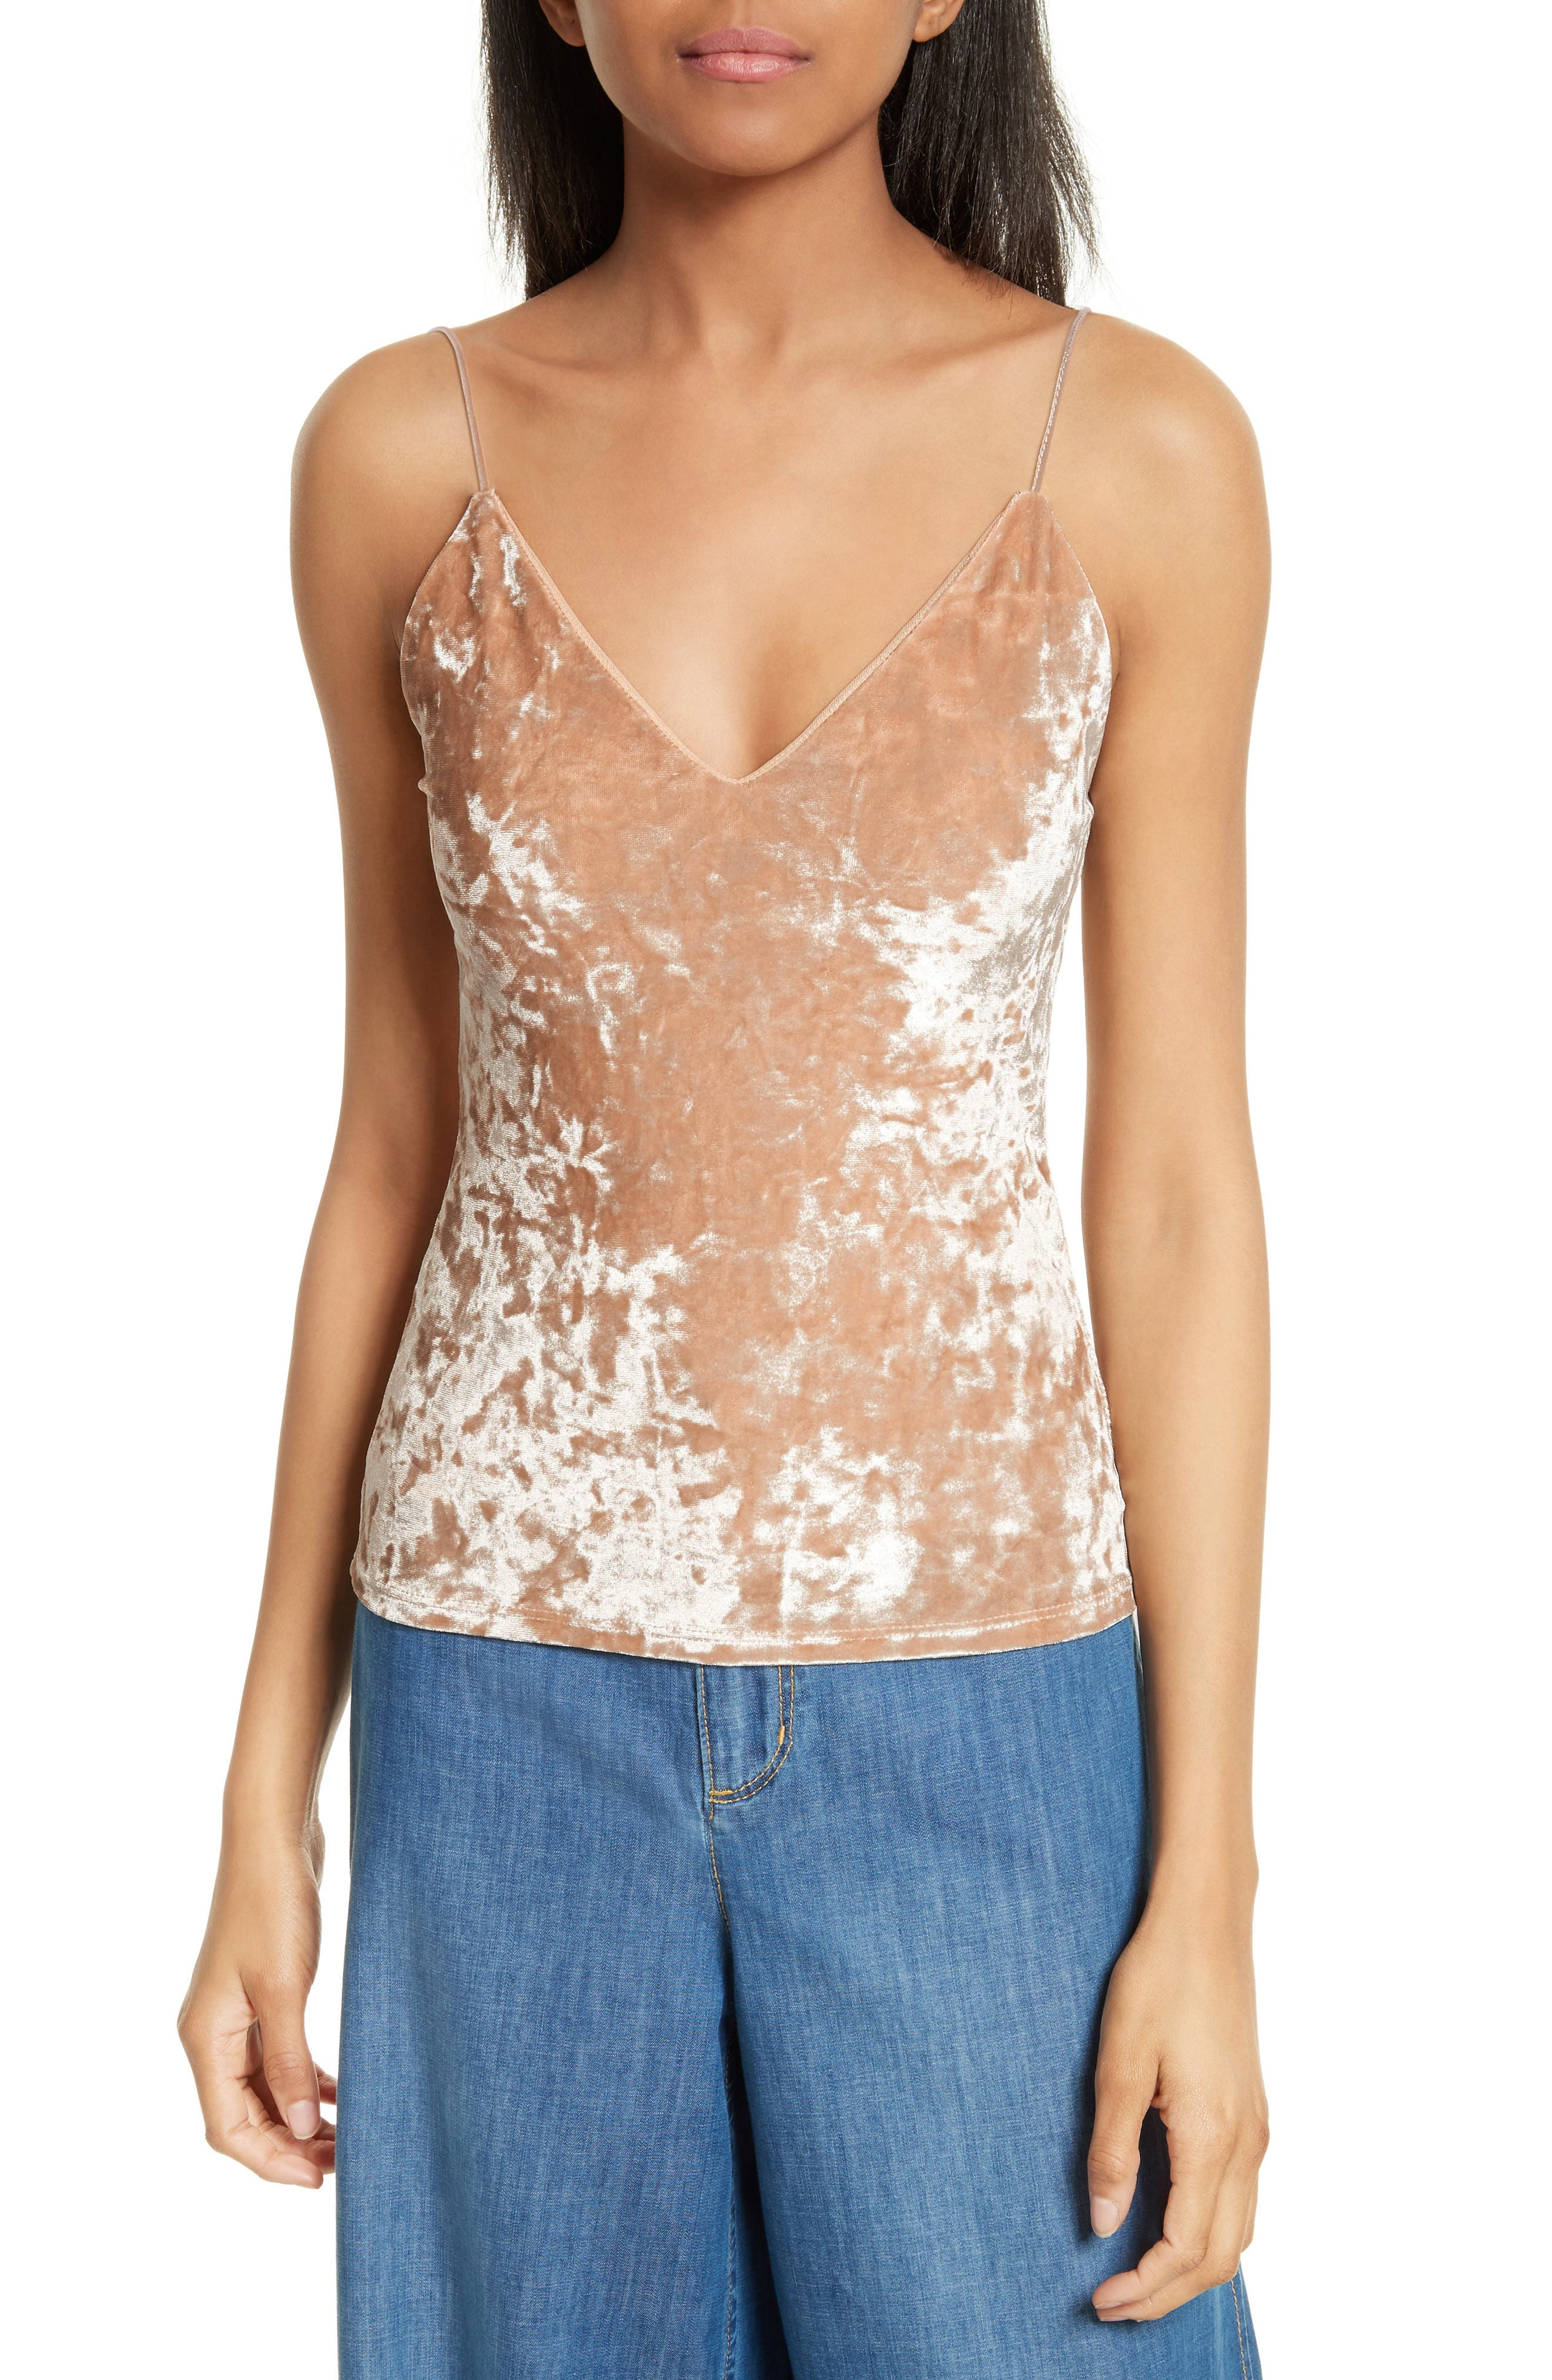 Delray Crushed Velvet Camisole,                         Main,                         color, 251